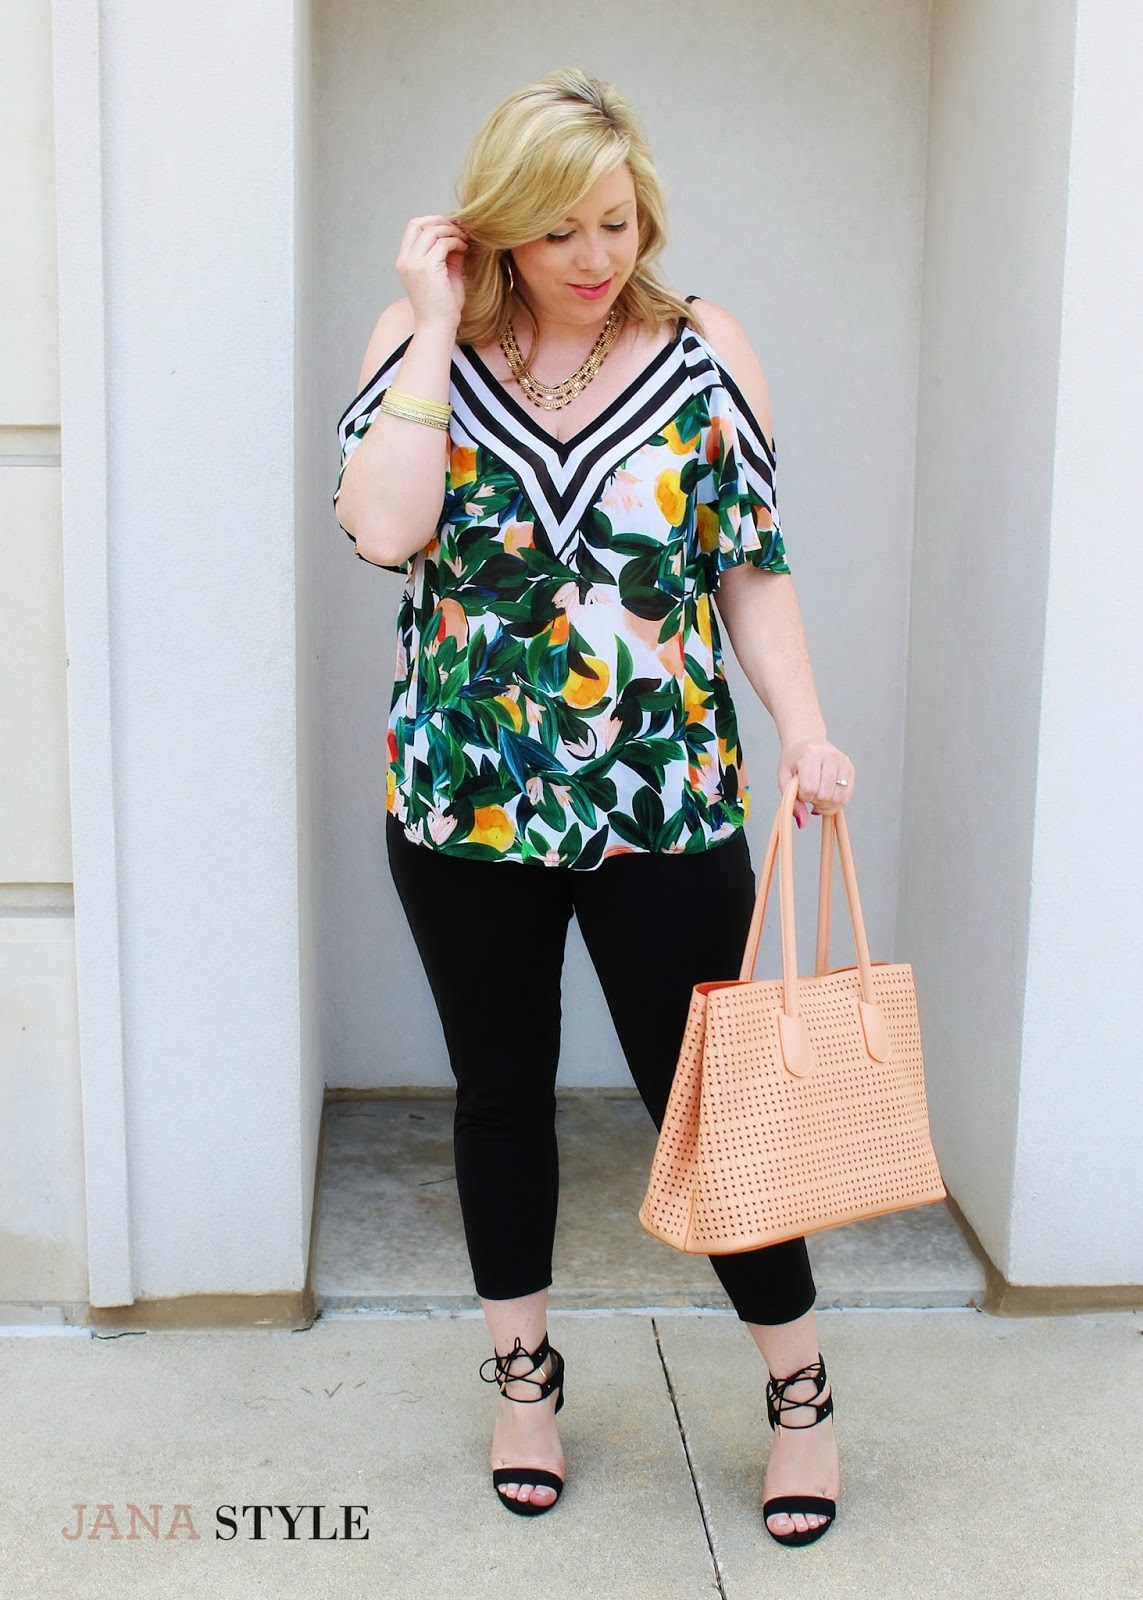 Cold Shoulder Tops Still Fashion